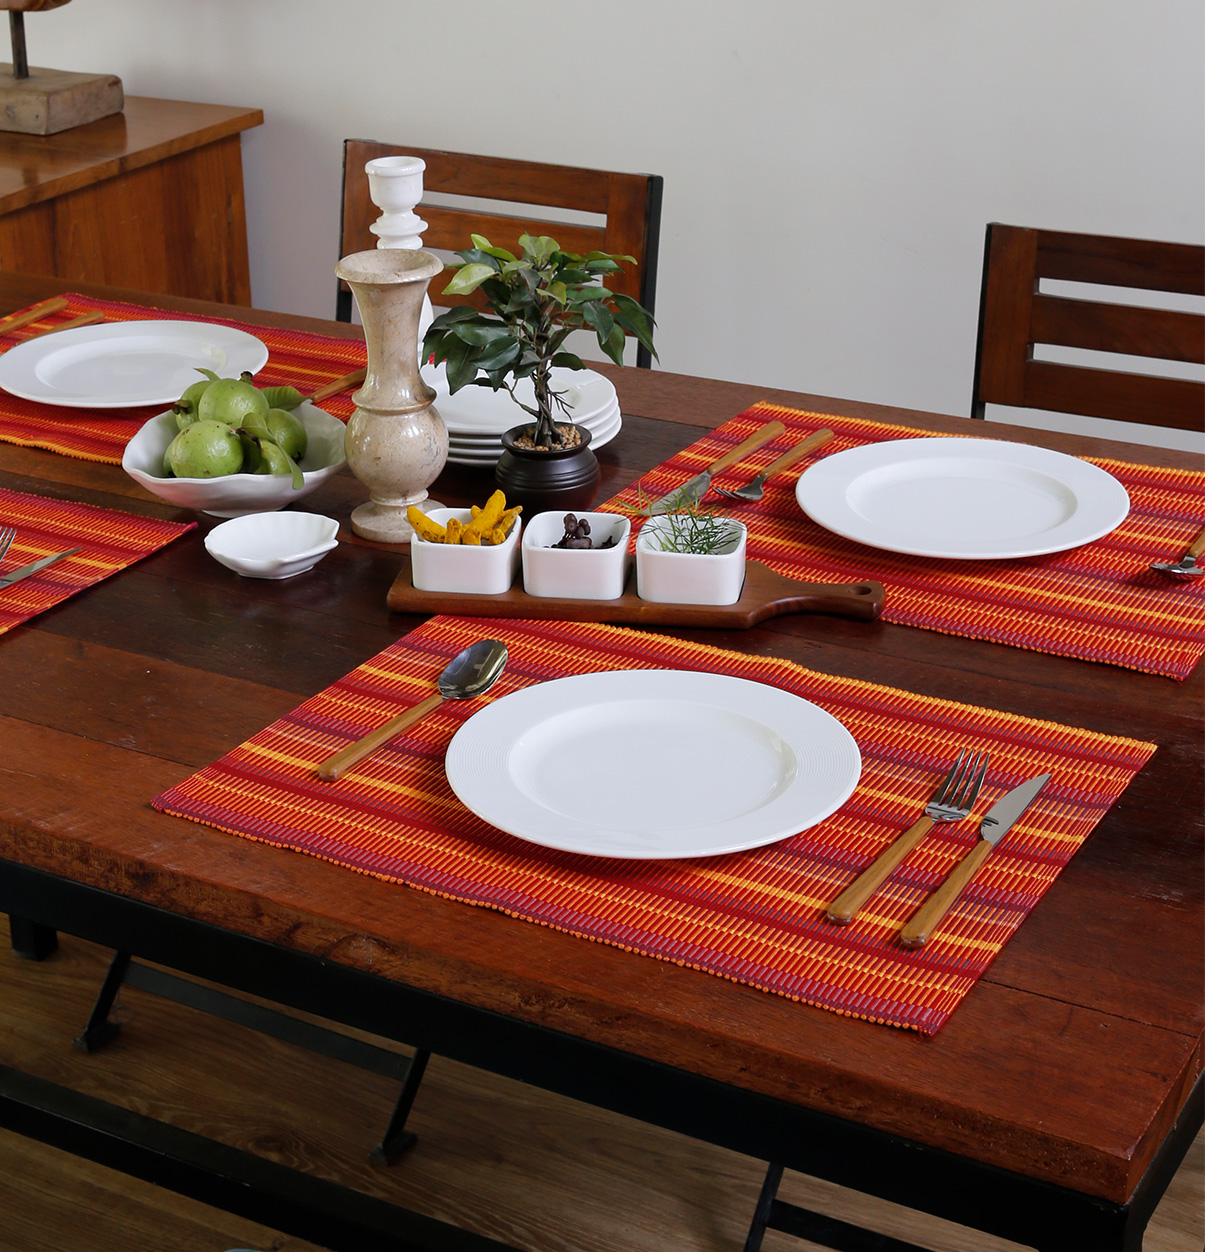 Handwoven Stripes Cotton Table Mats Red Yellow Set Of 6 Thoppia